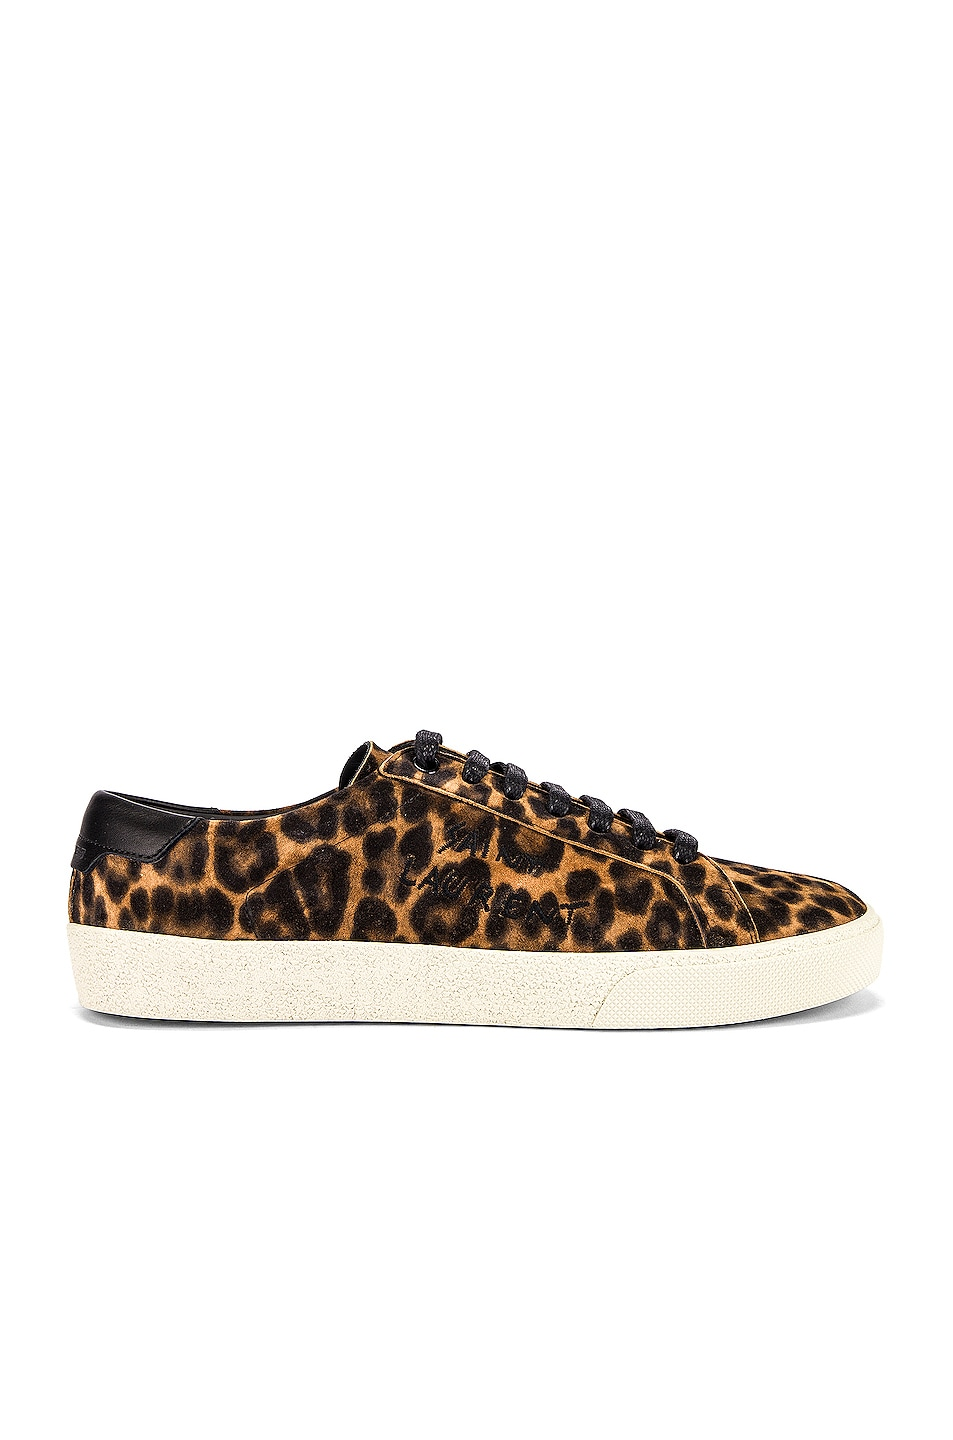 Image 1 of Saint Laurent Leopard Sneakers in Natural & Black